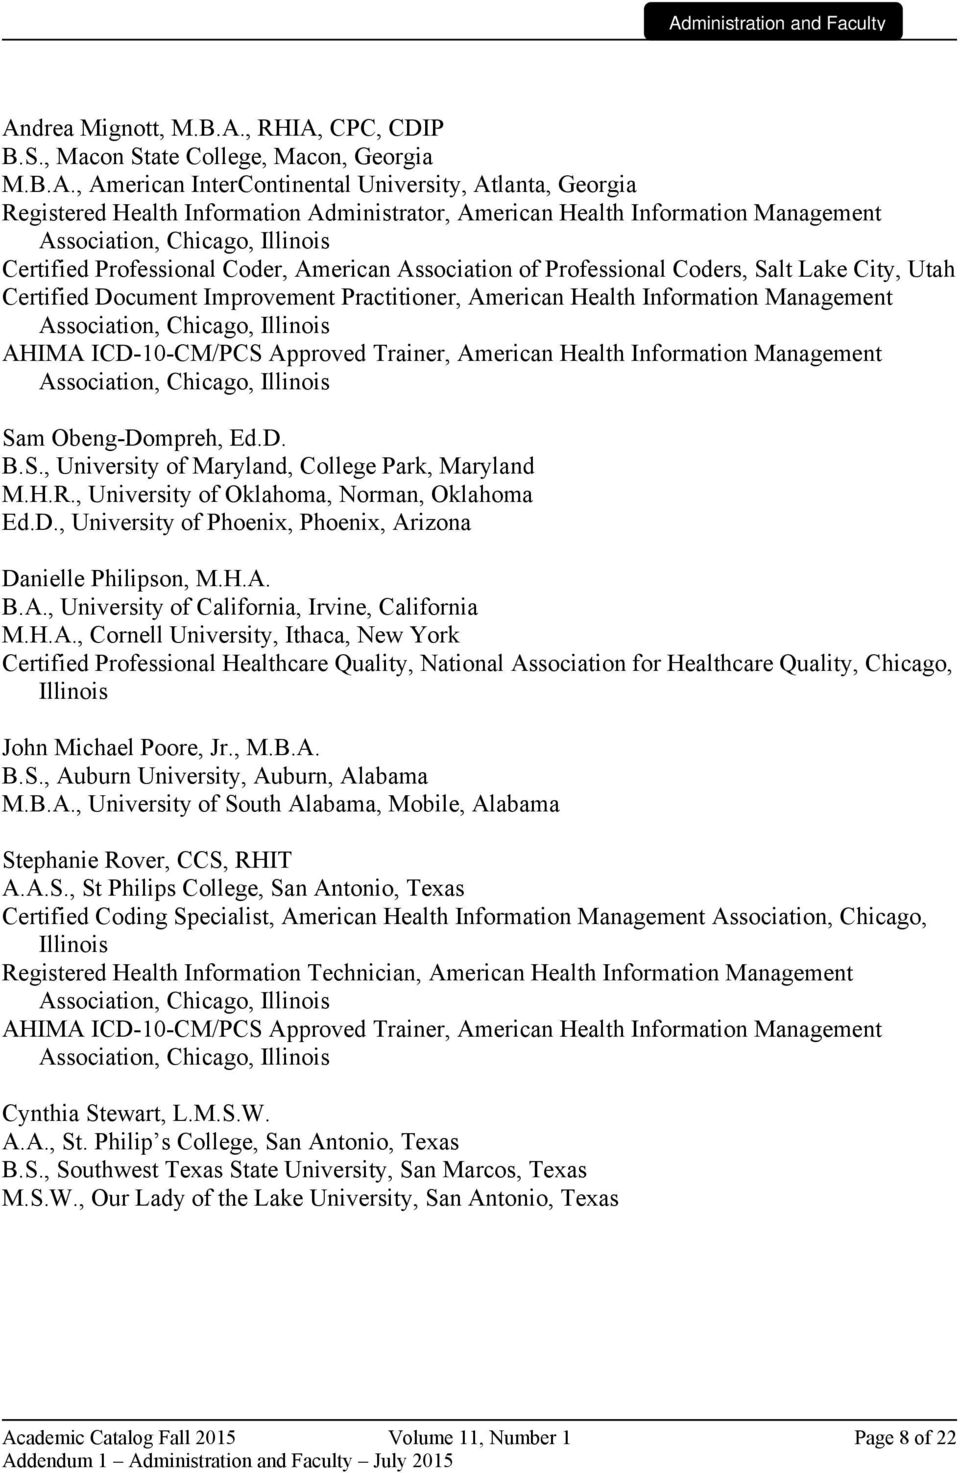 Practitioner, American Health Information Management Association, Chicago, Illinois AHIMA ICD-10-CM/PCS Approved Trainer, American Health Information Management Association, Chicago, Illinois Sam